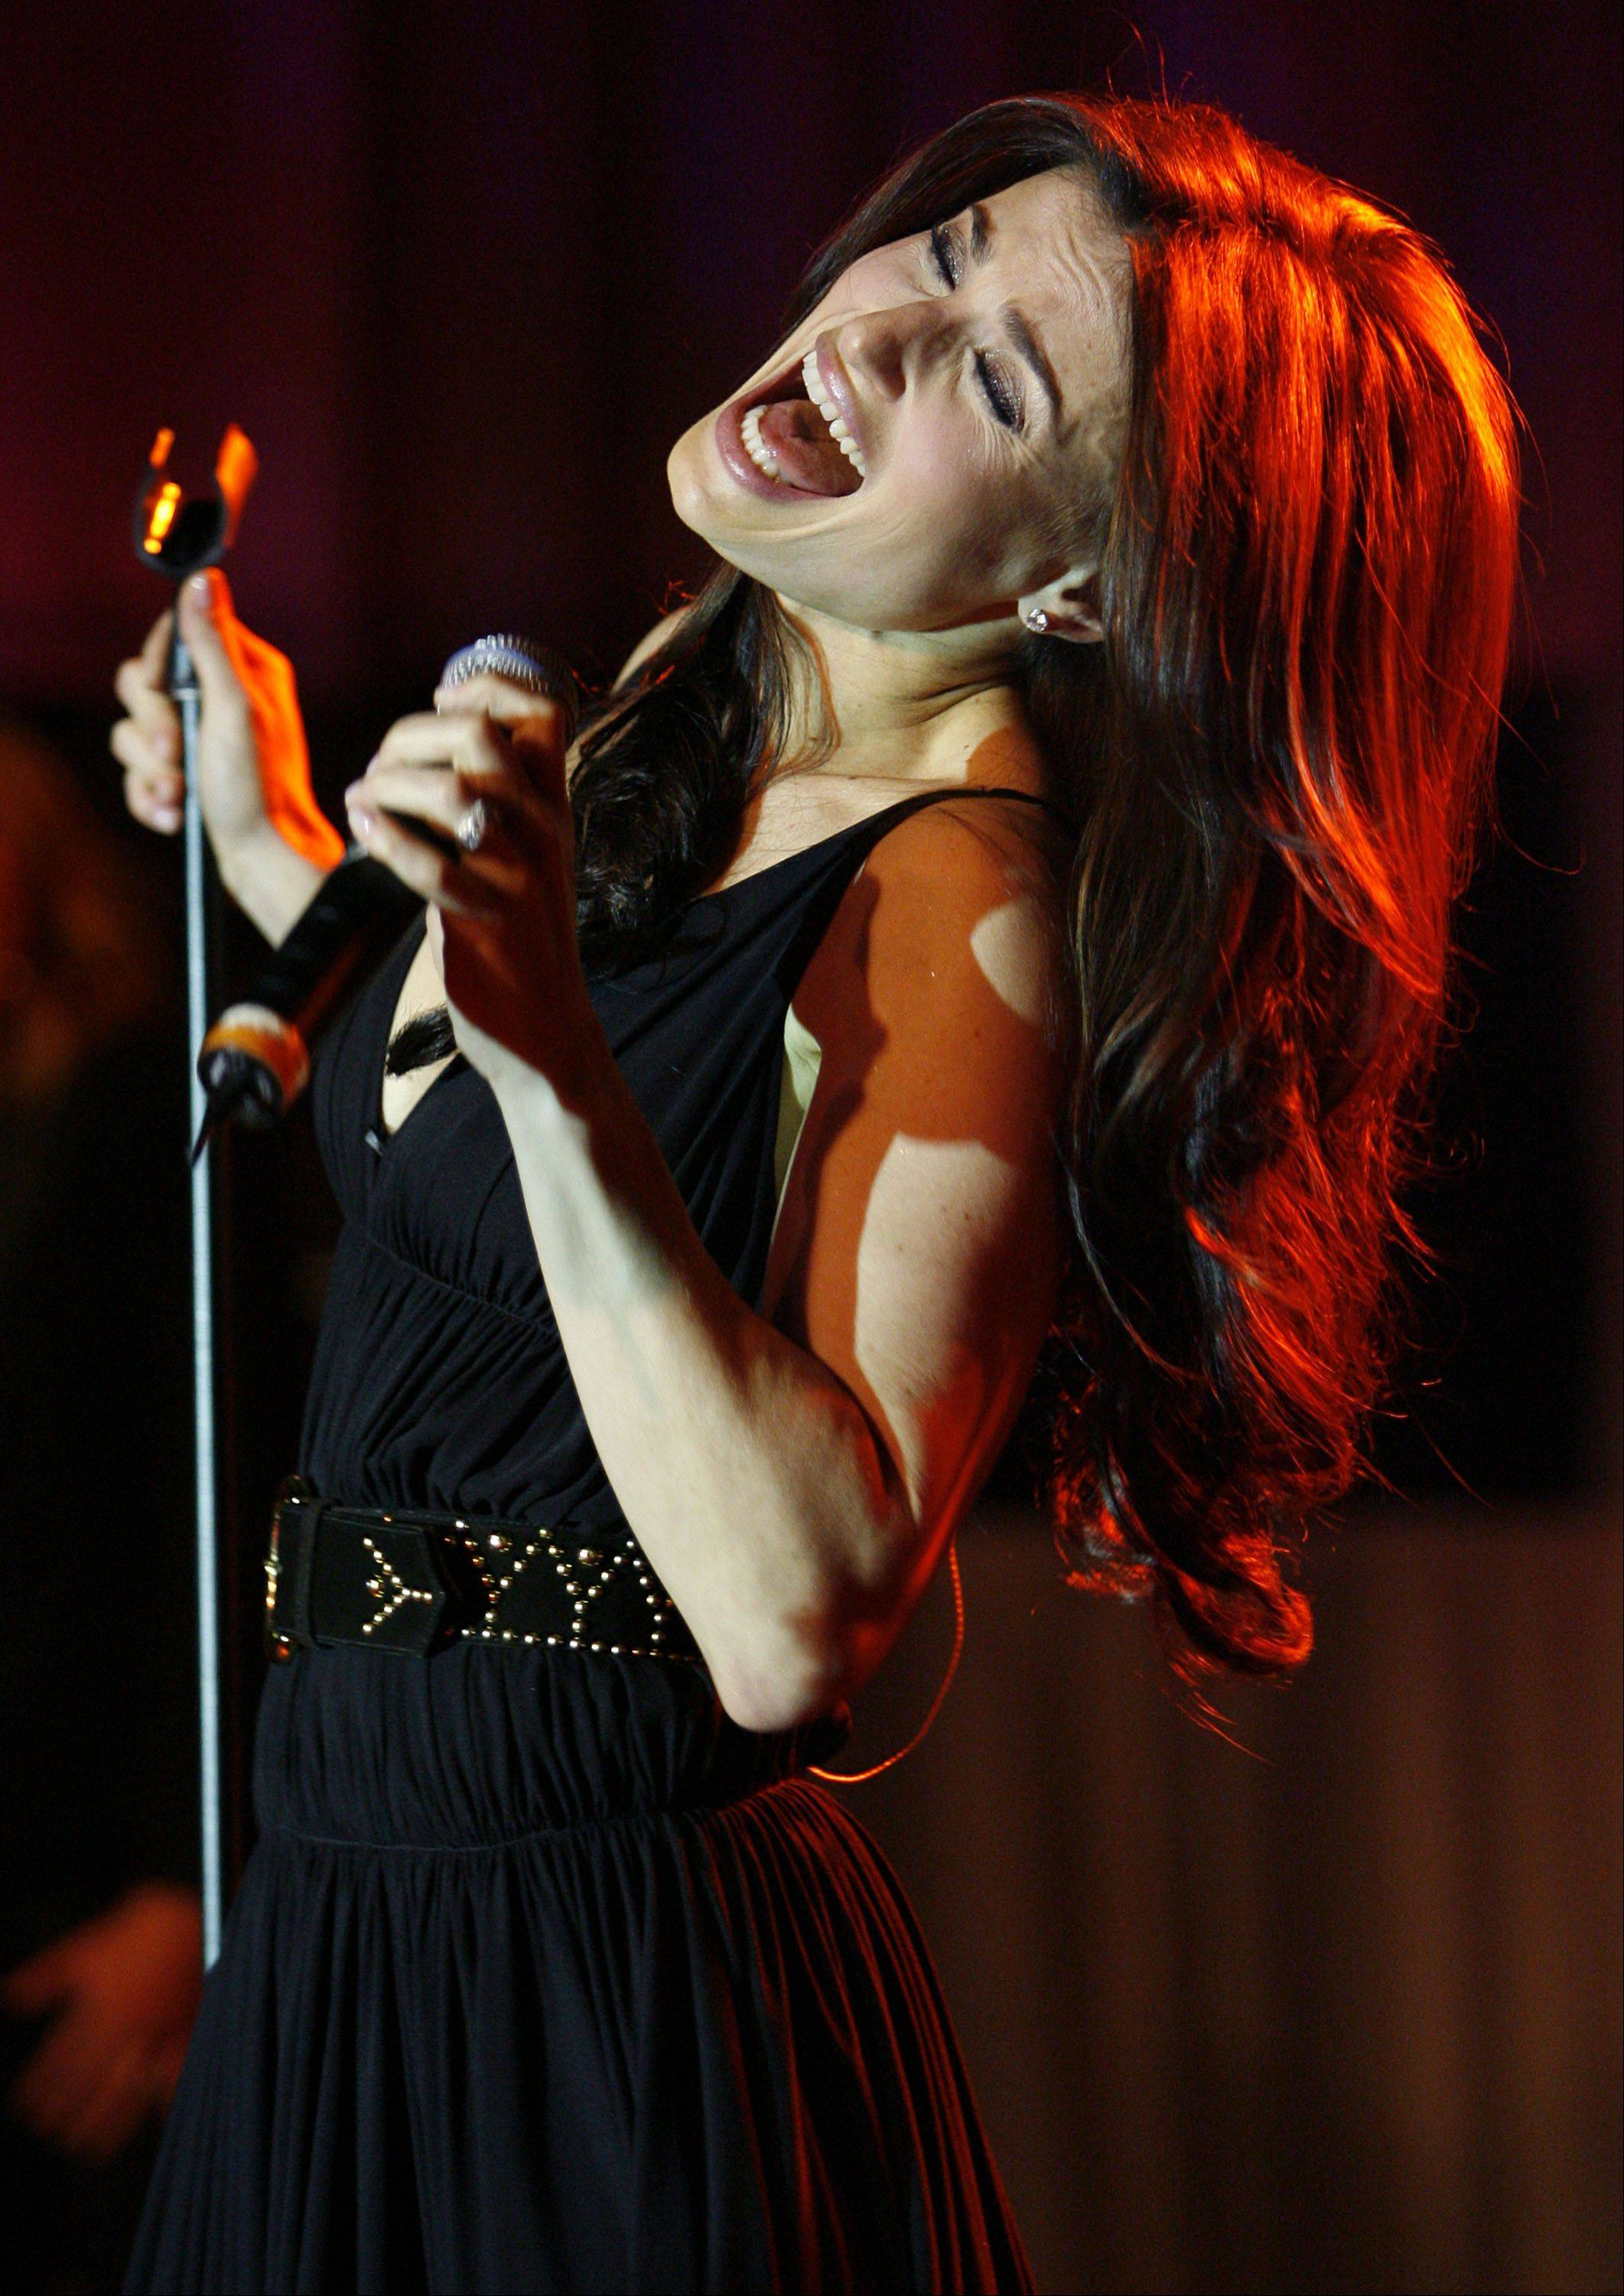 Singer Idina Menzel will perform July 19 at Aurora's RiverEdge Park.